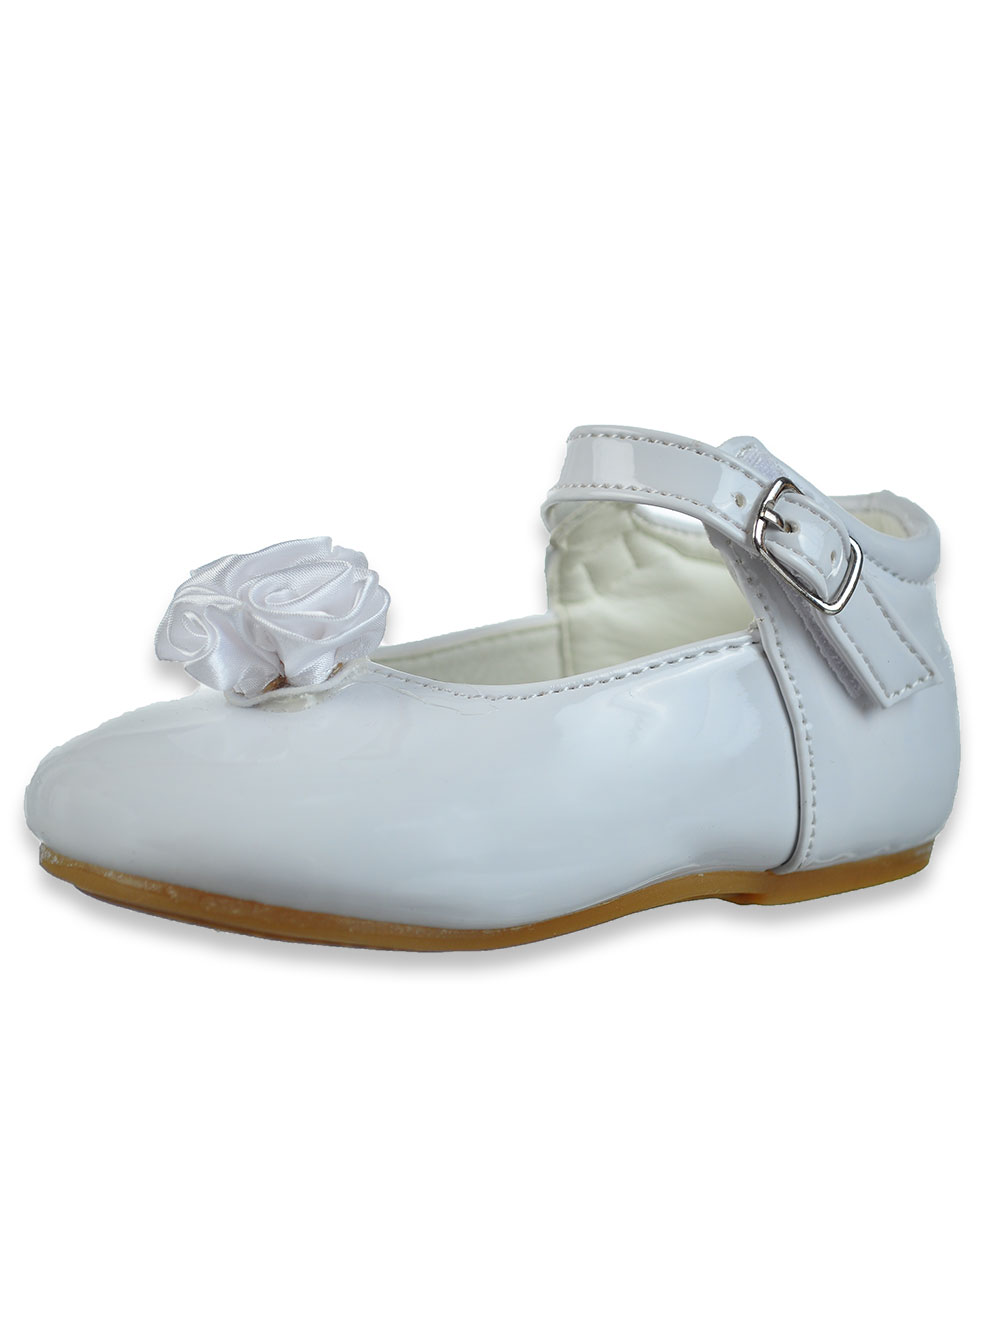 Size 6 Infant Dress Shoes for Girls